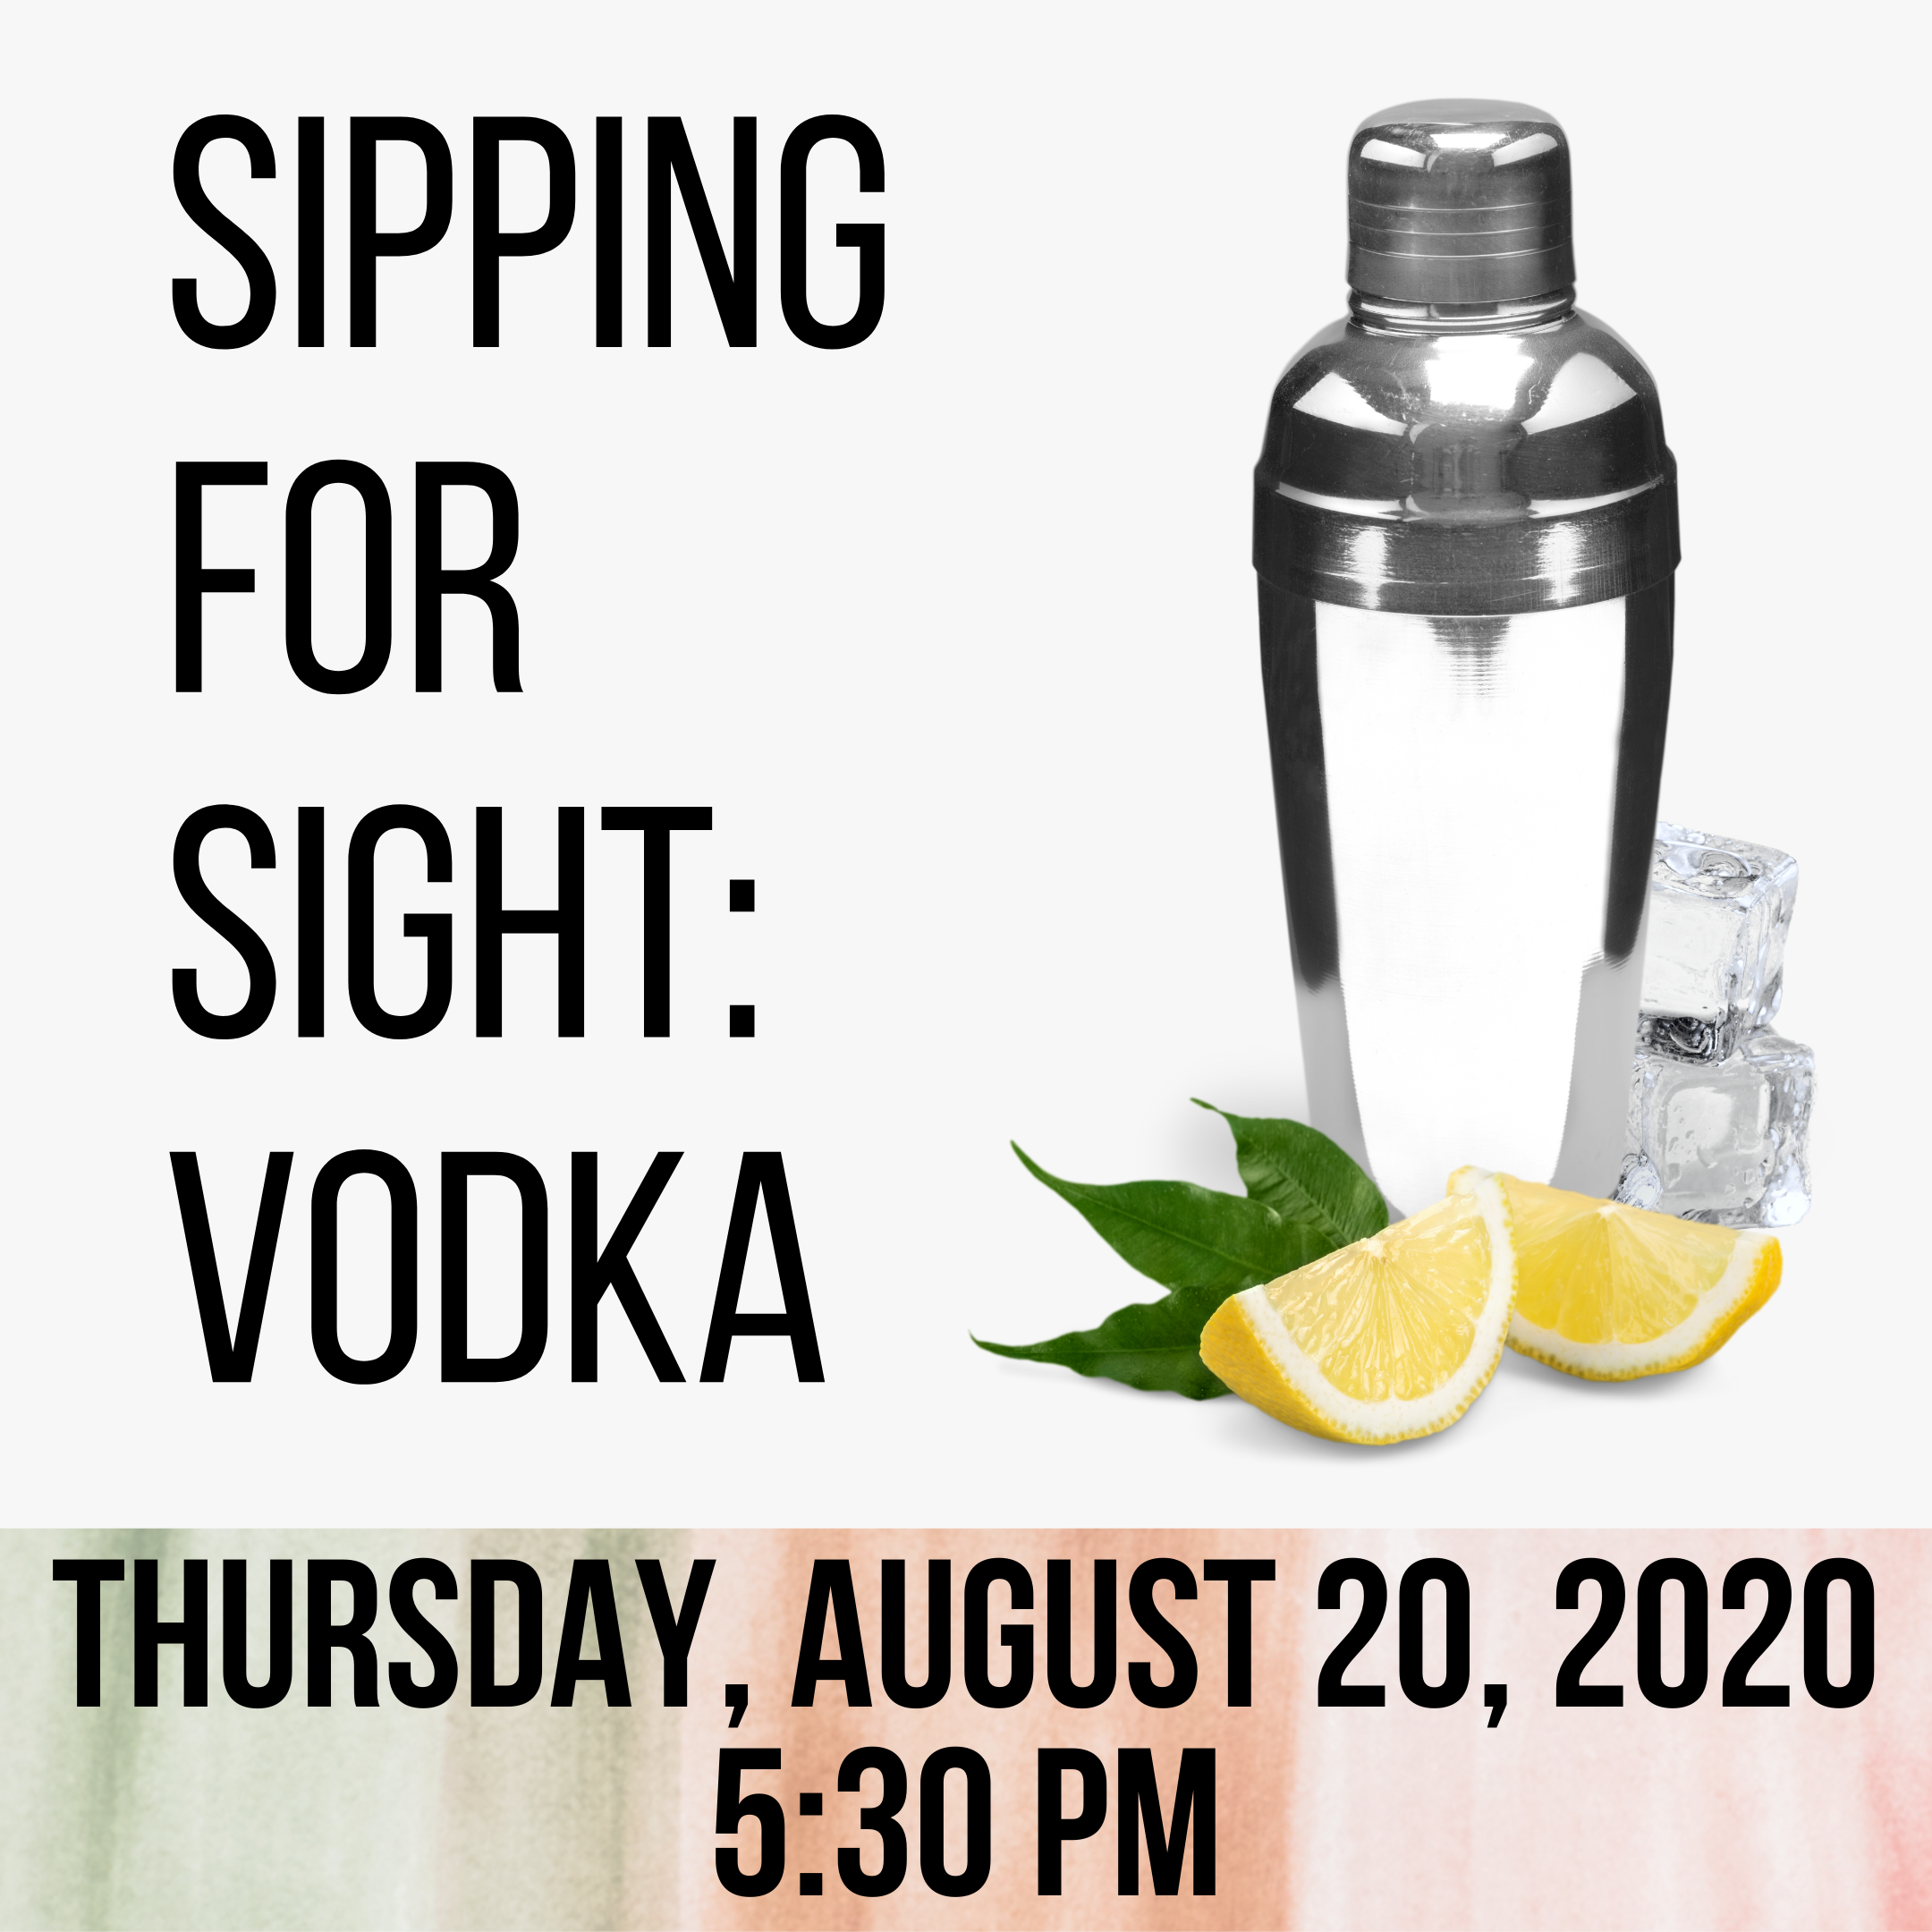 Sipping for Sight: Vodka